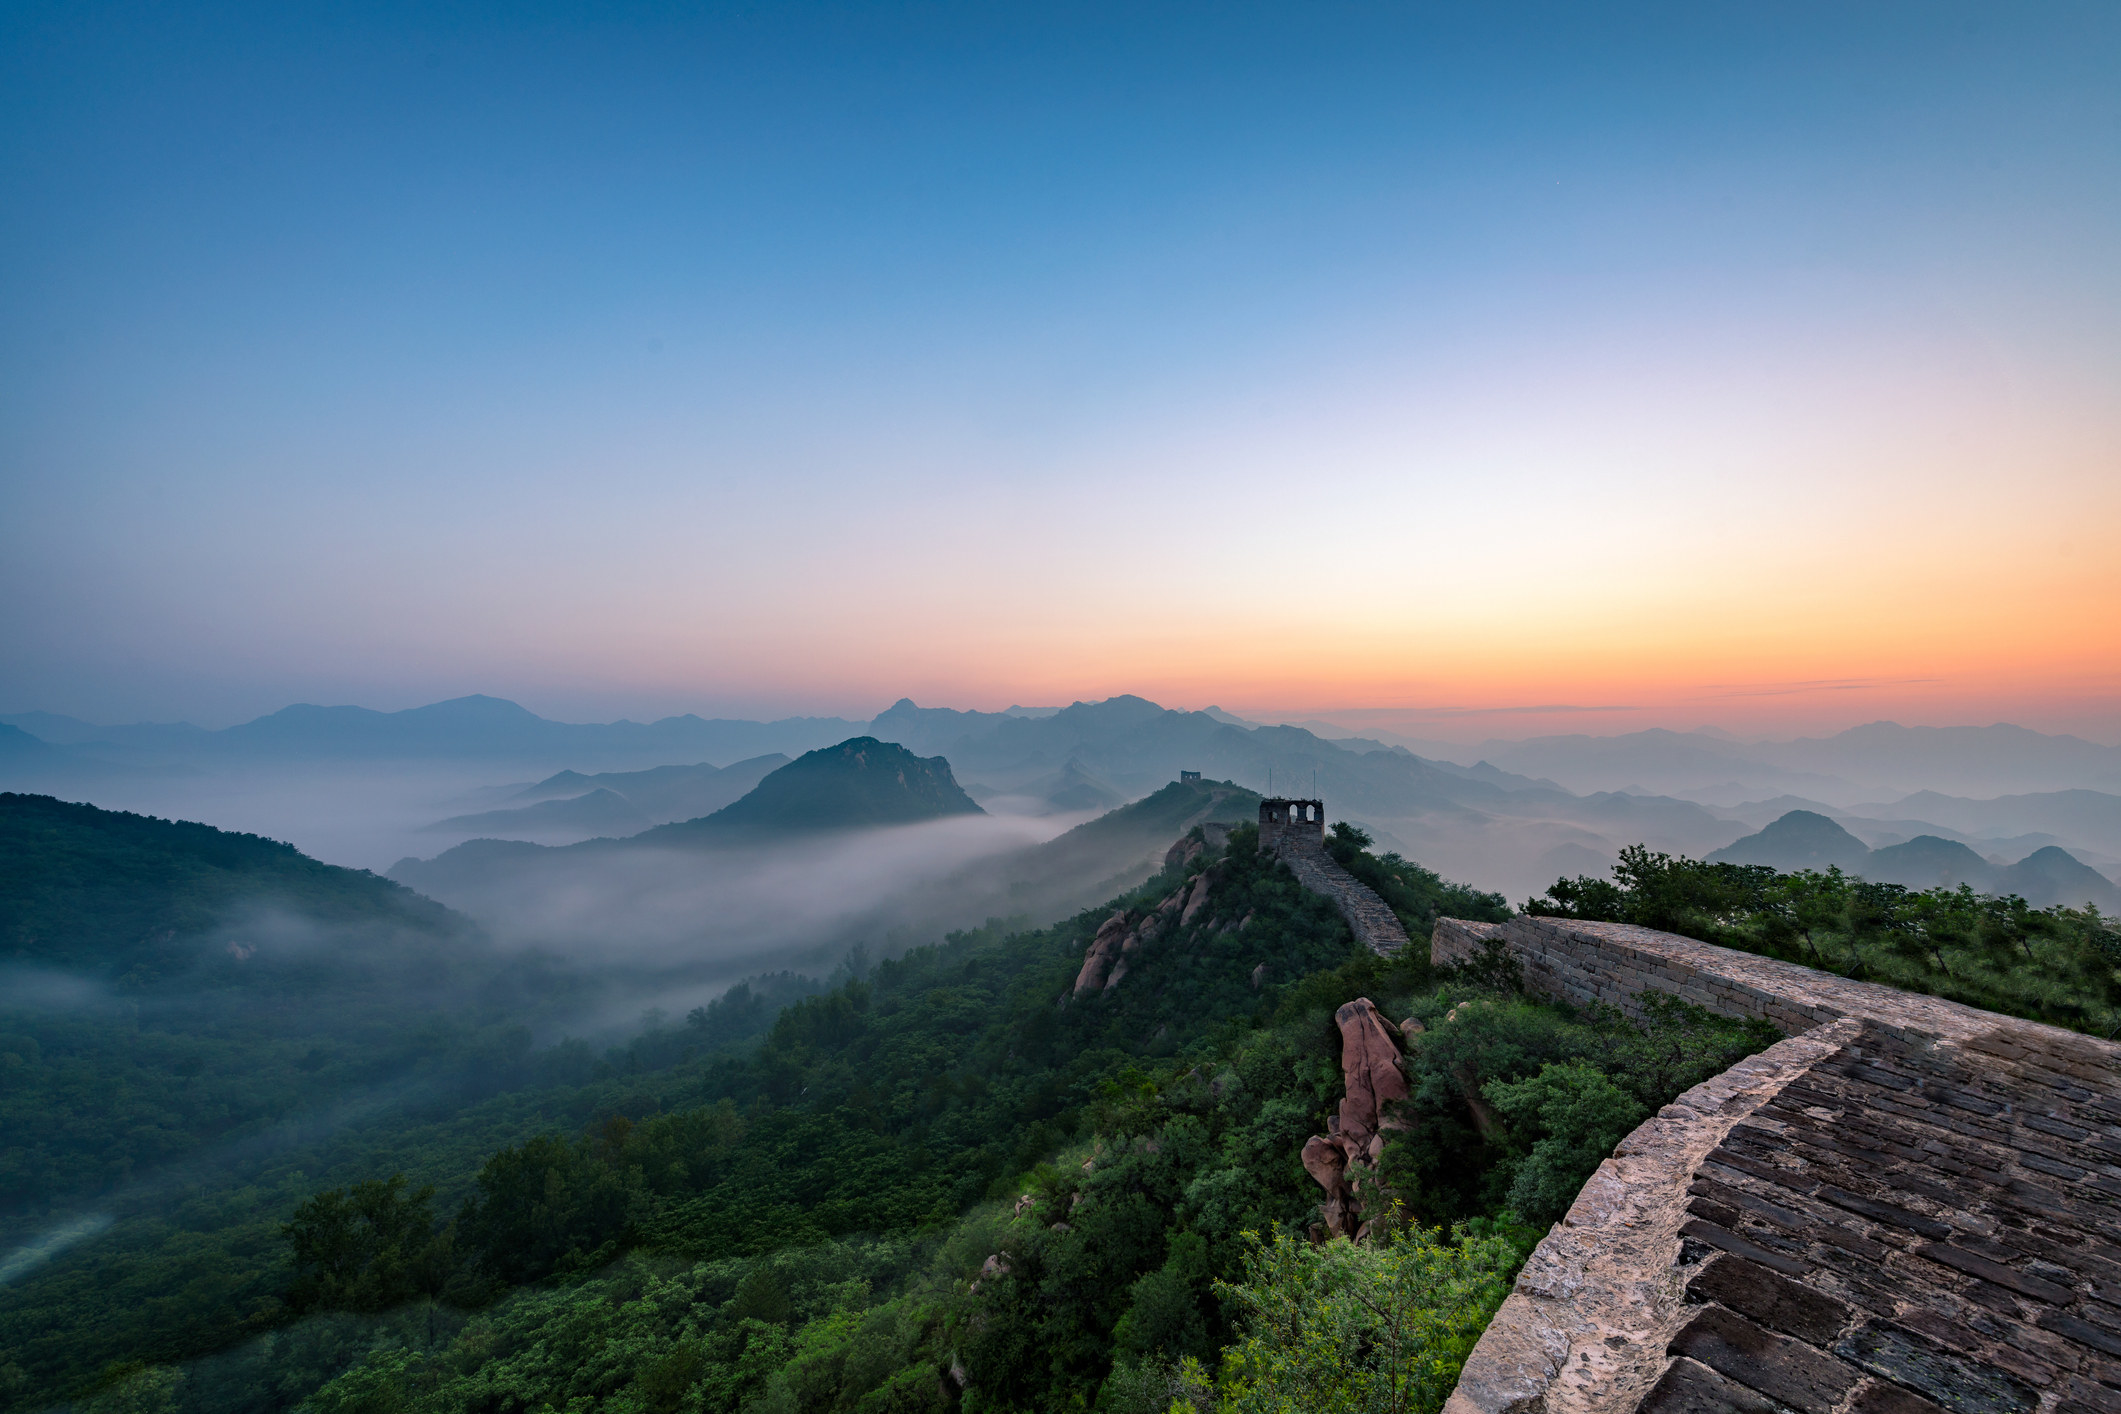 A quiet stretch of the Great Wall of China.